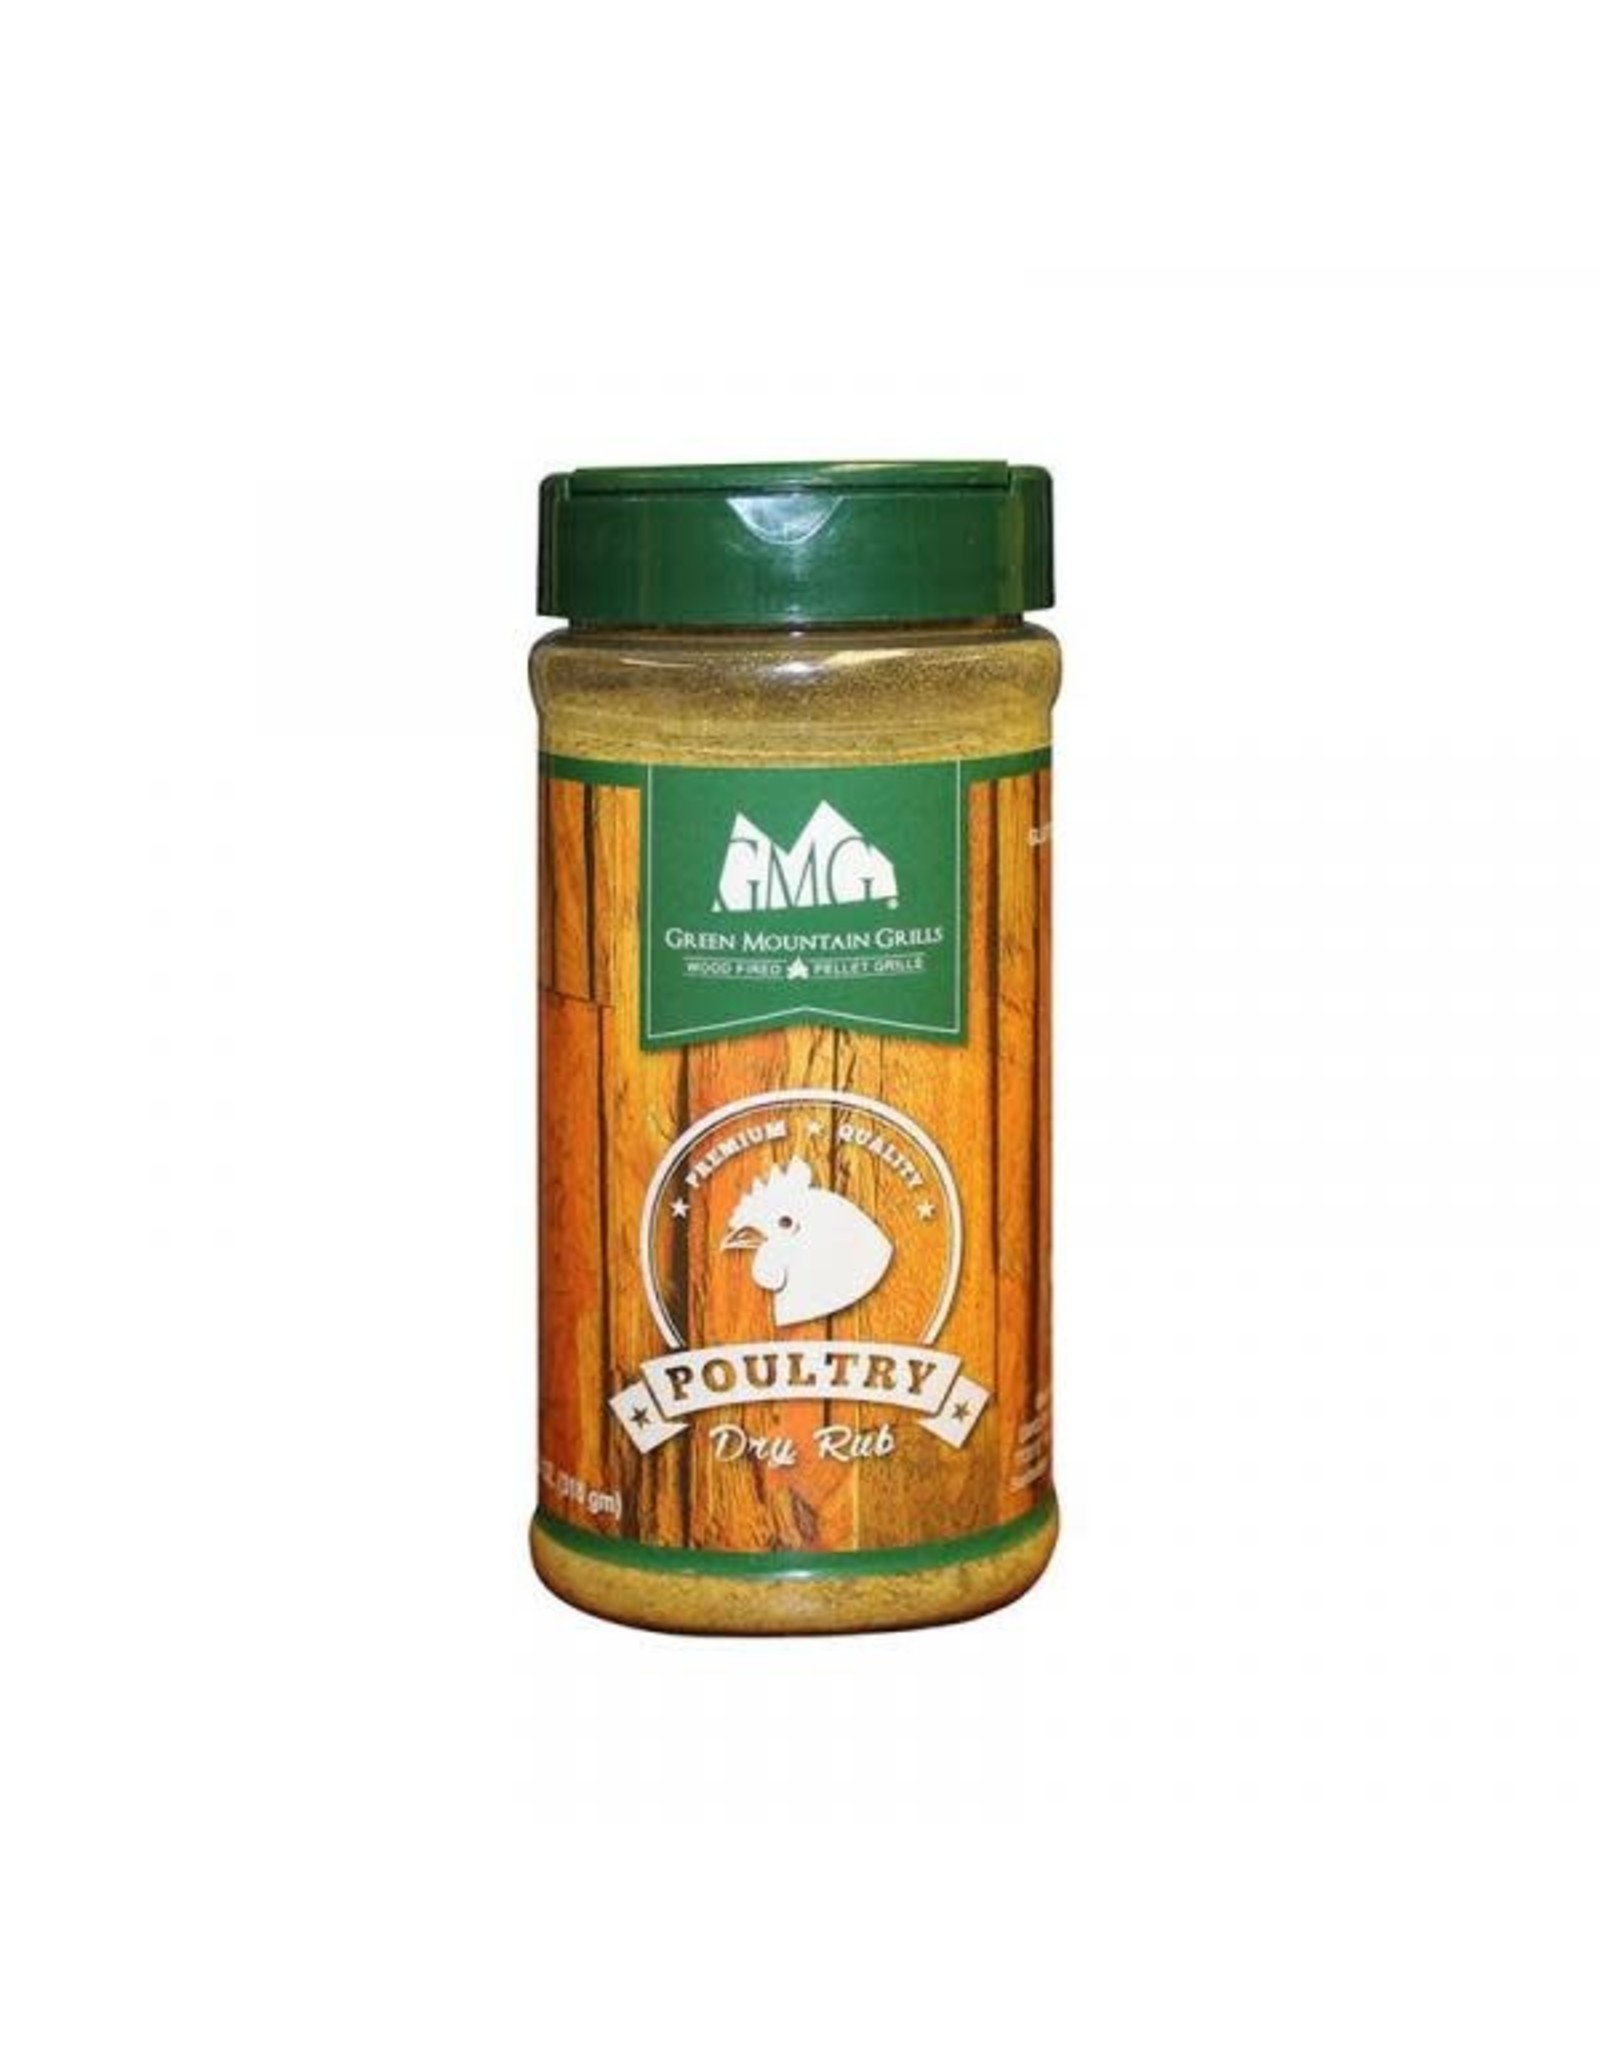 GMG GMG DRY RUB (POULTRY) GMG Poultry Dry Rub on your chicken, turkey, pheasant, and more